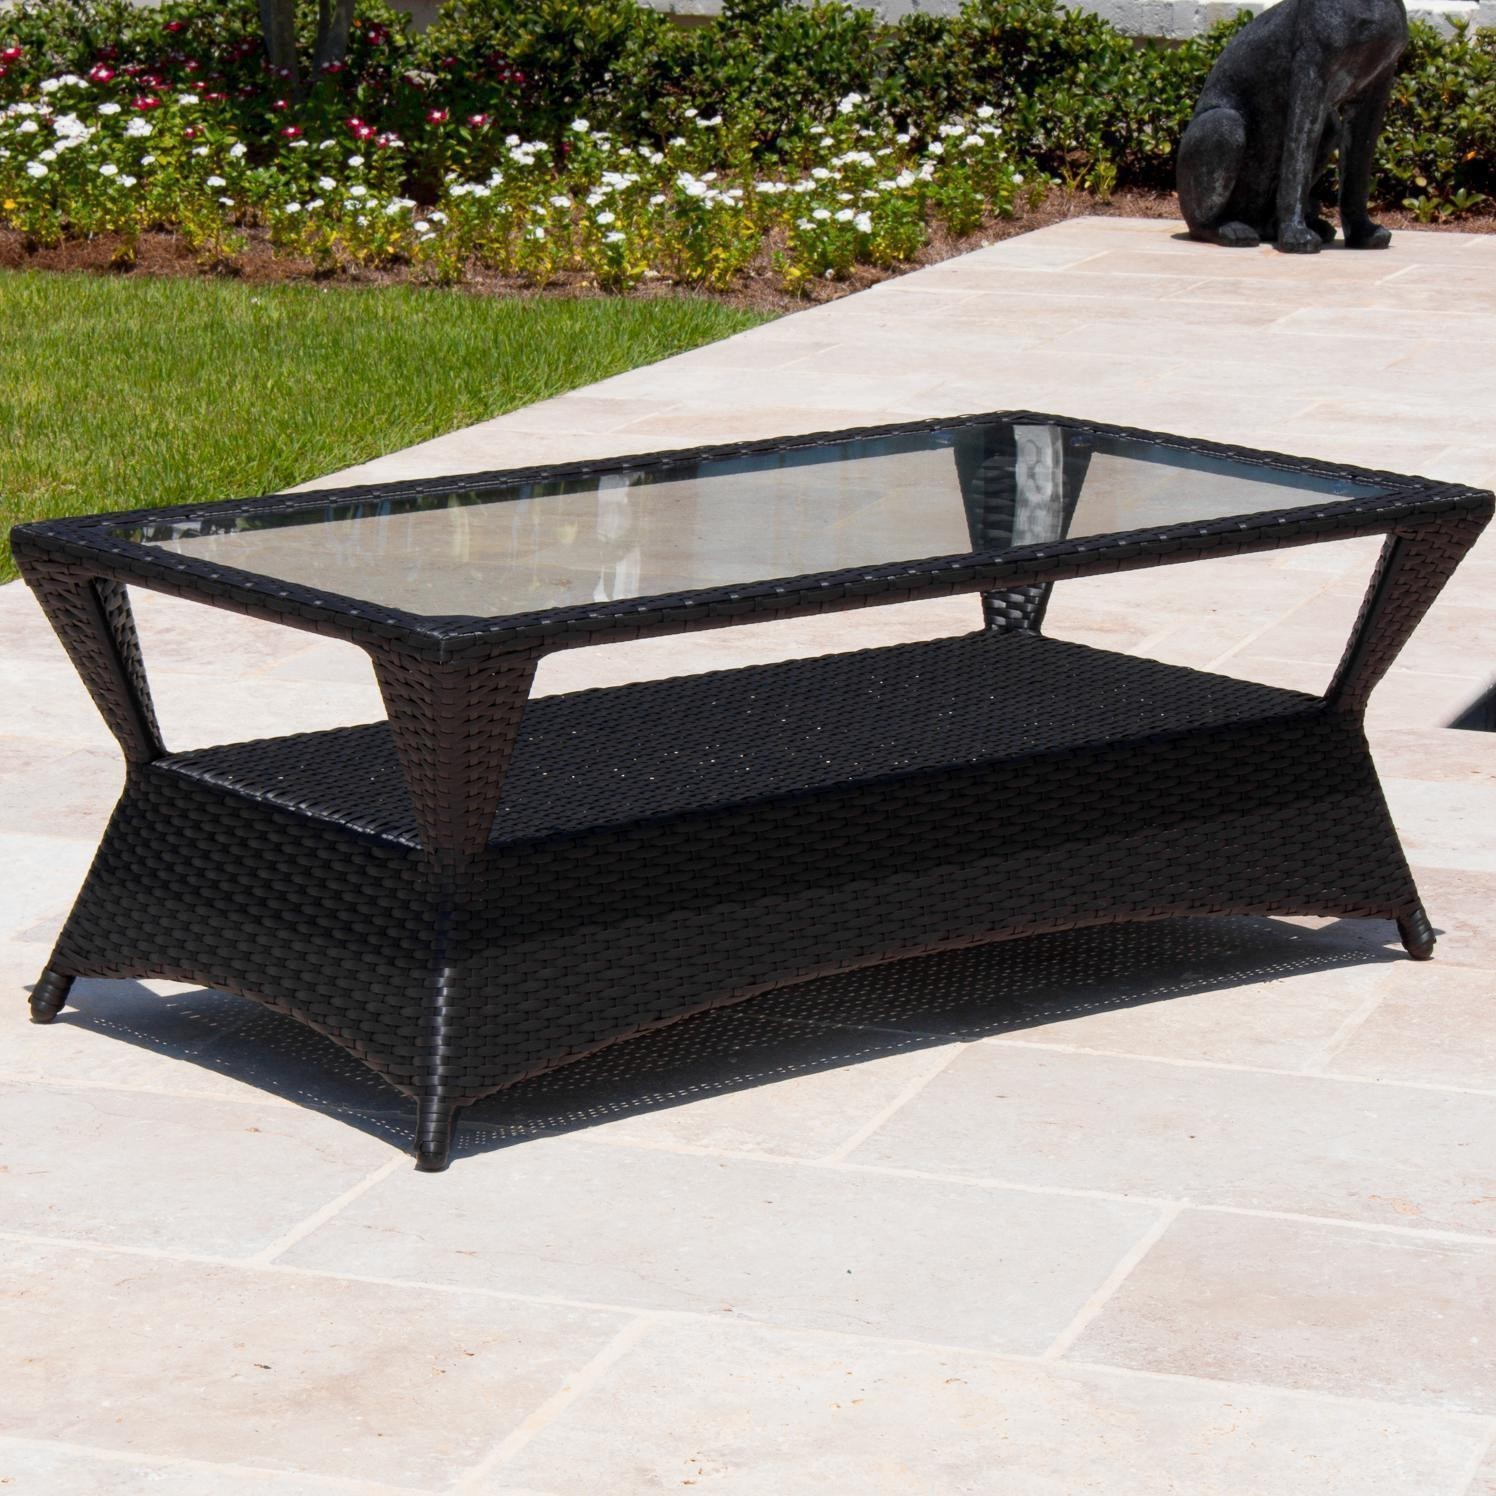 slate top coffee table luxury plastic outdoor side storage plans cherry finish end tables pier one seat cushions round with leaf modern style furniture pine nightstands bedroom